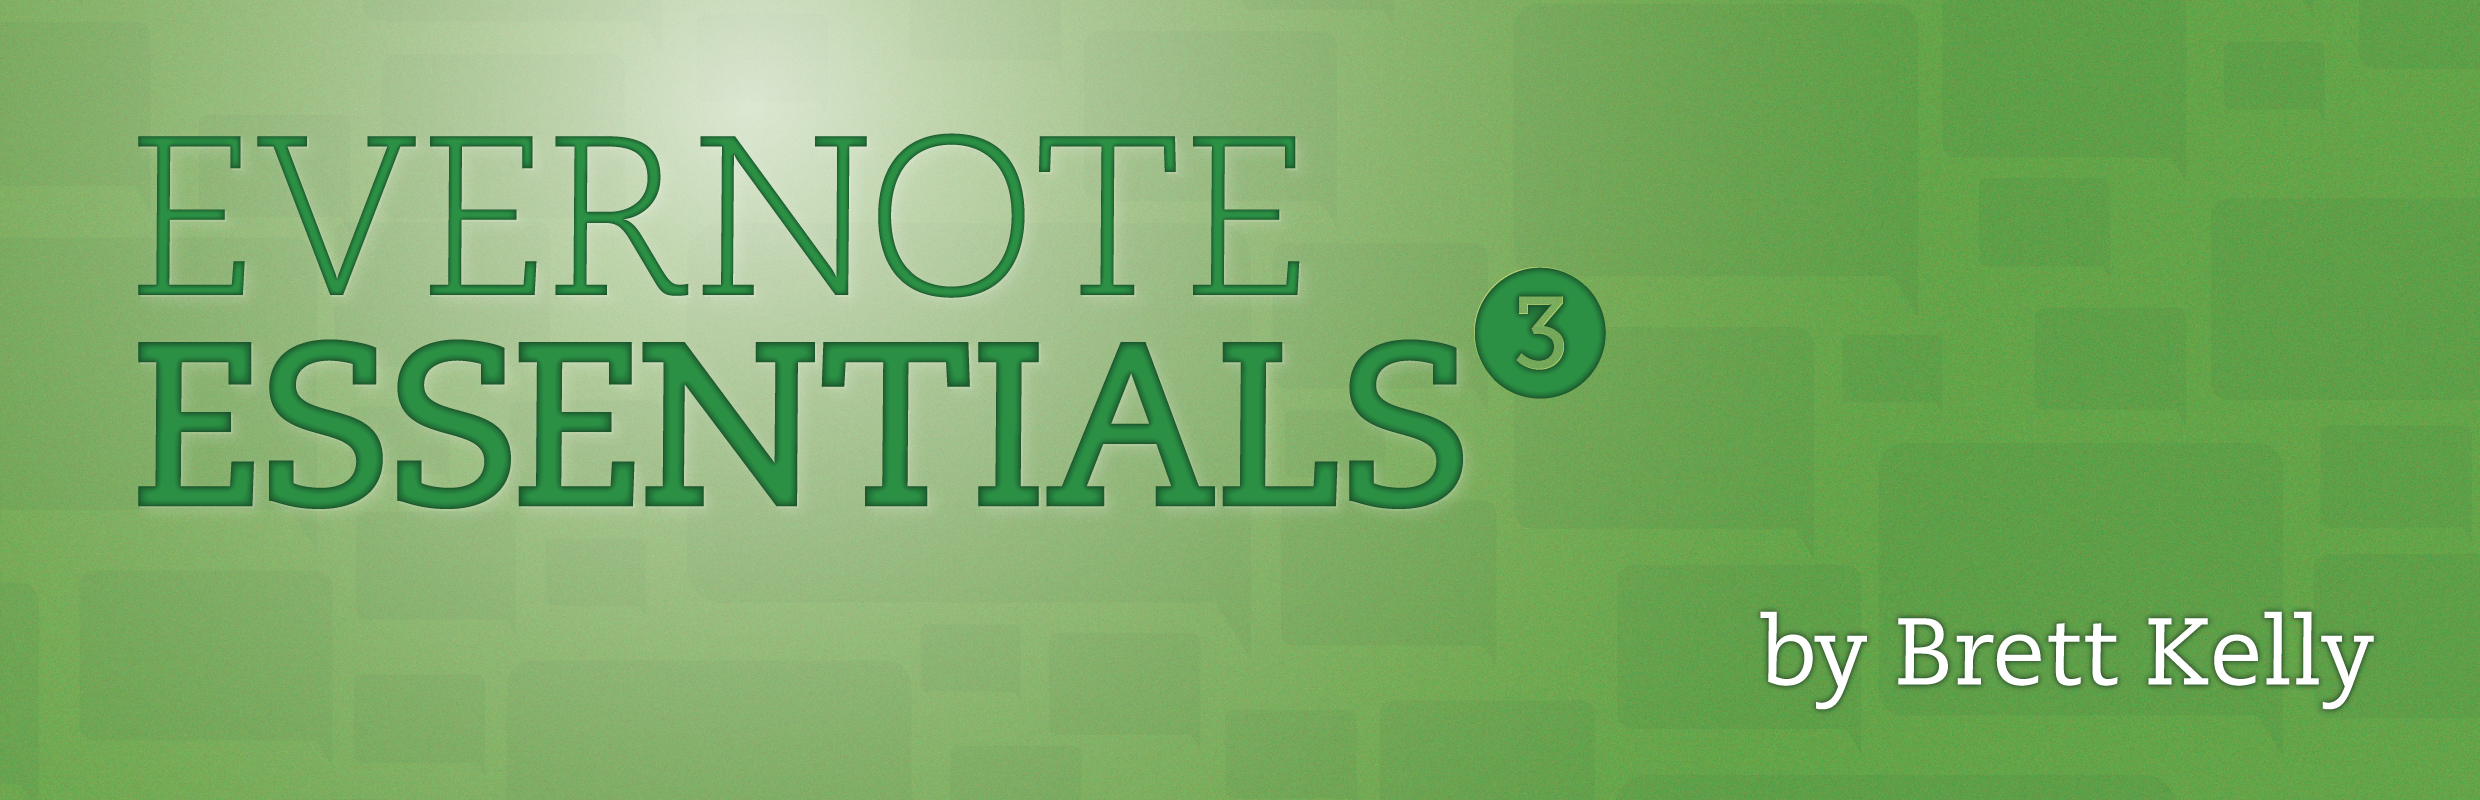 http://members.nerdgap.com/order-evernote-essentials/?orid=37946&opid=2